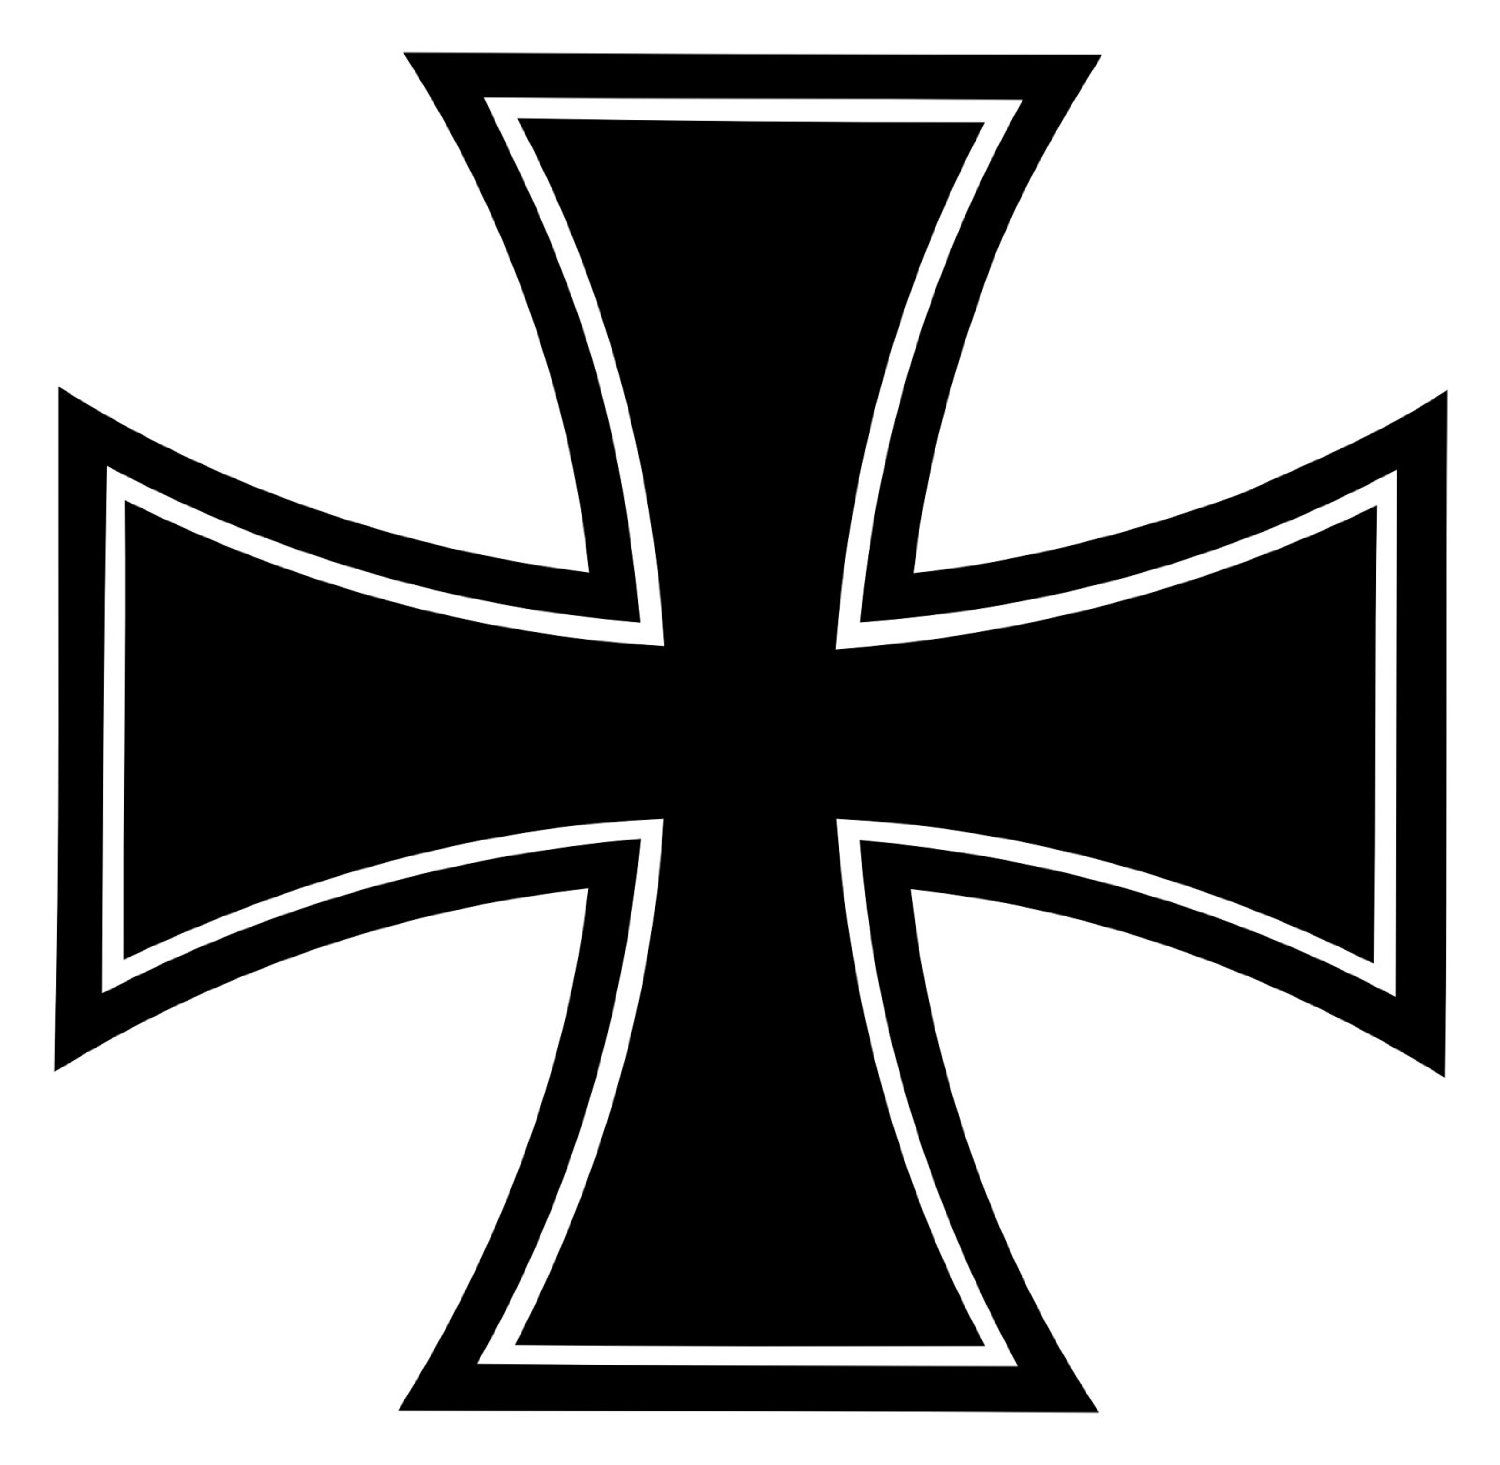 This is the logo for the bundeswehr the iron cross tattoo this is the logo for the bundeswehr the iron cross publicscrutiny Image collections